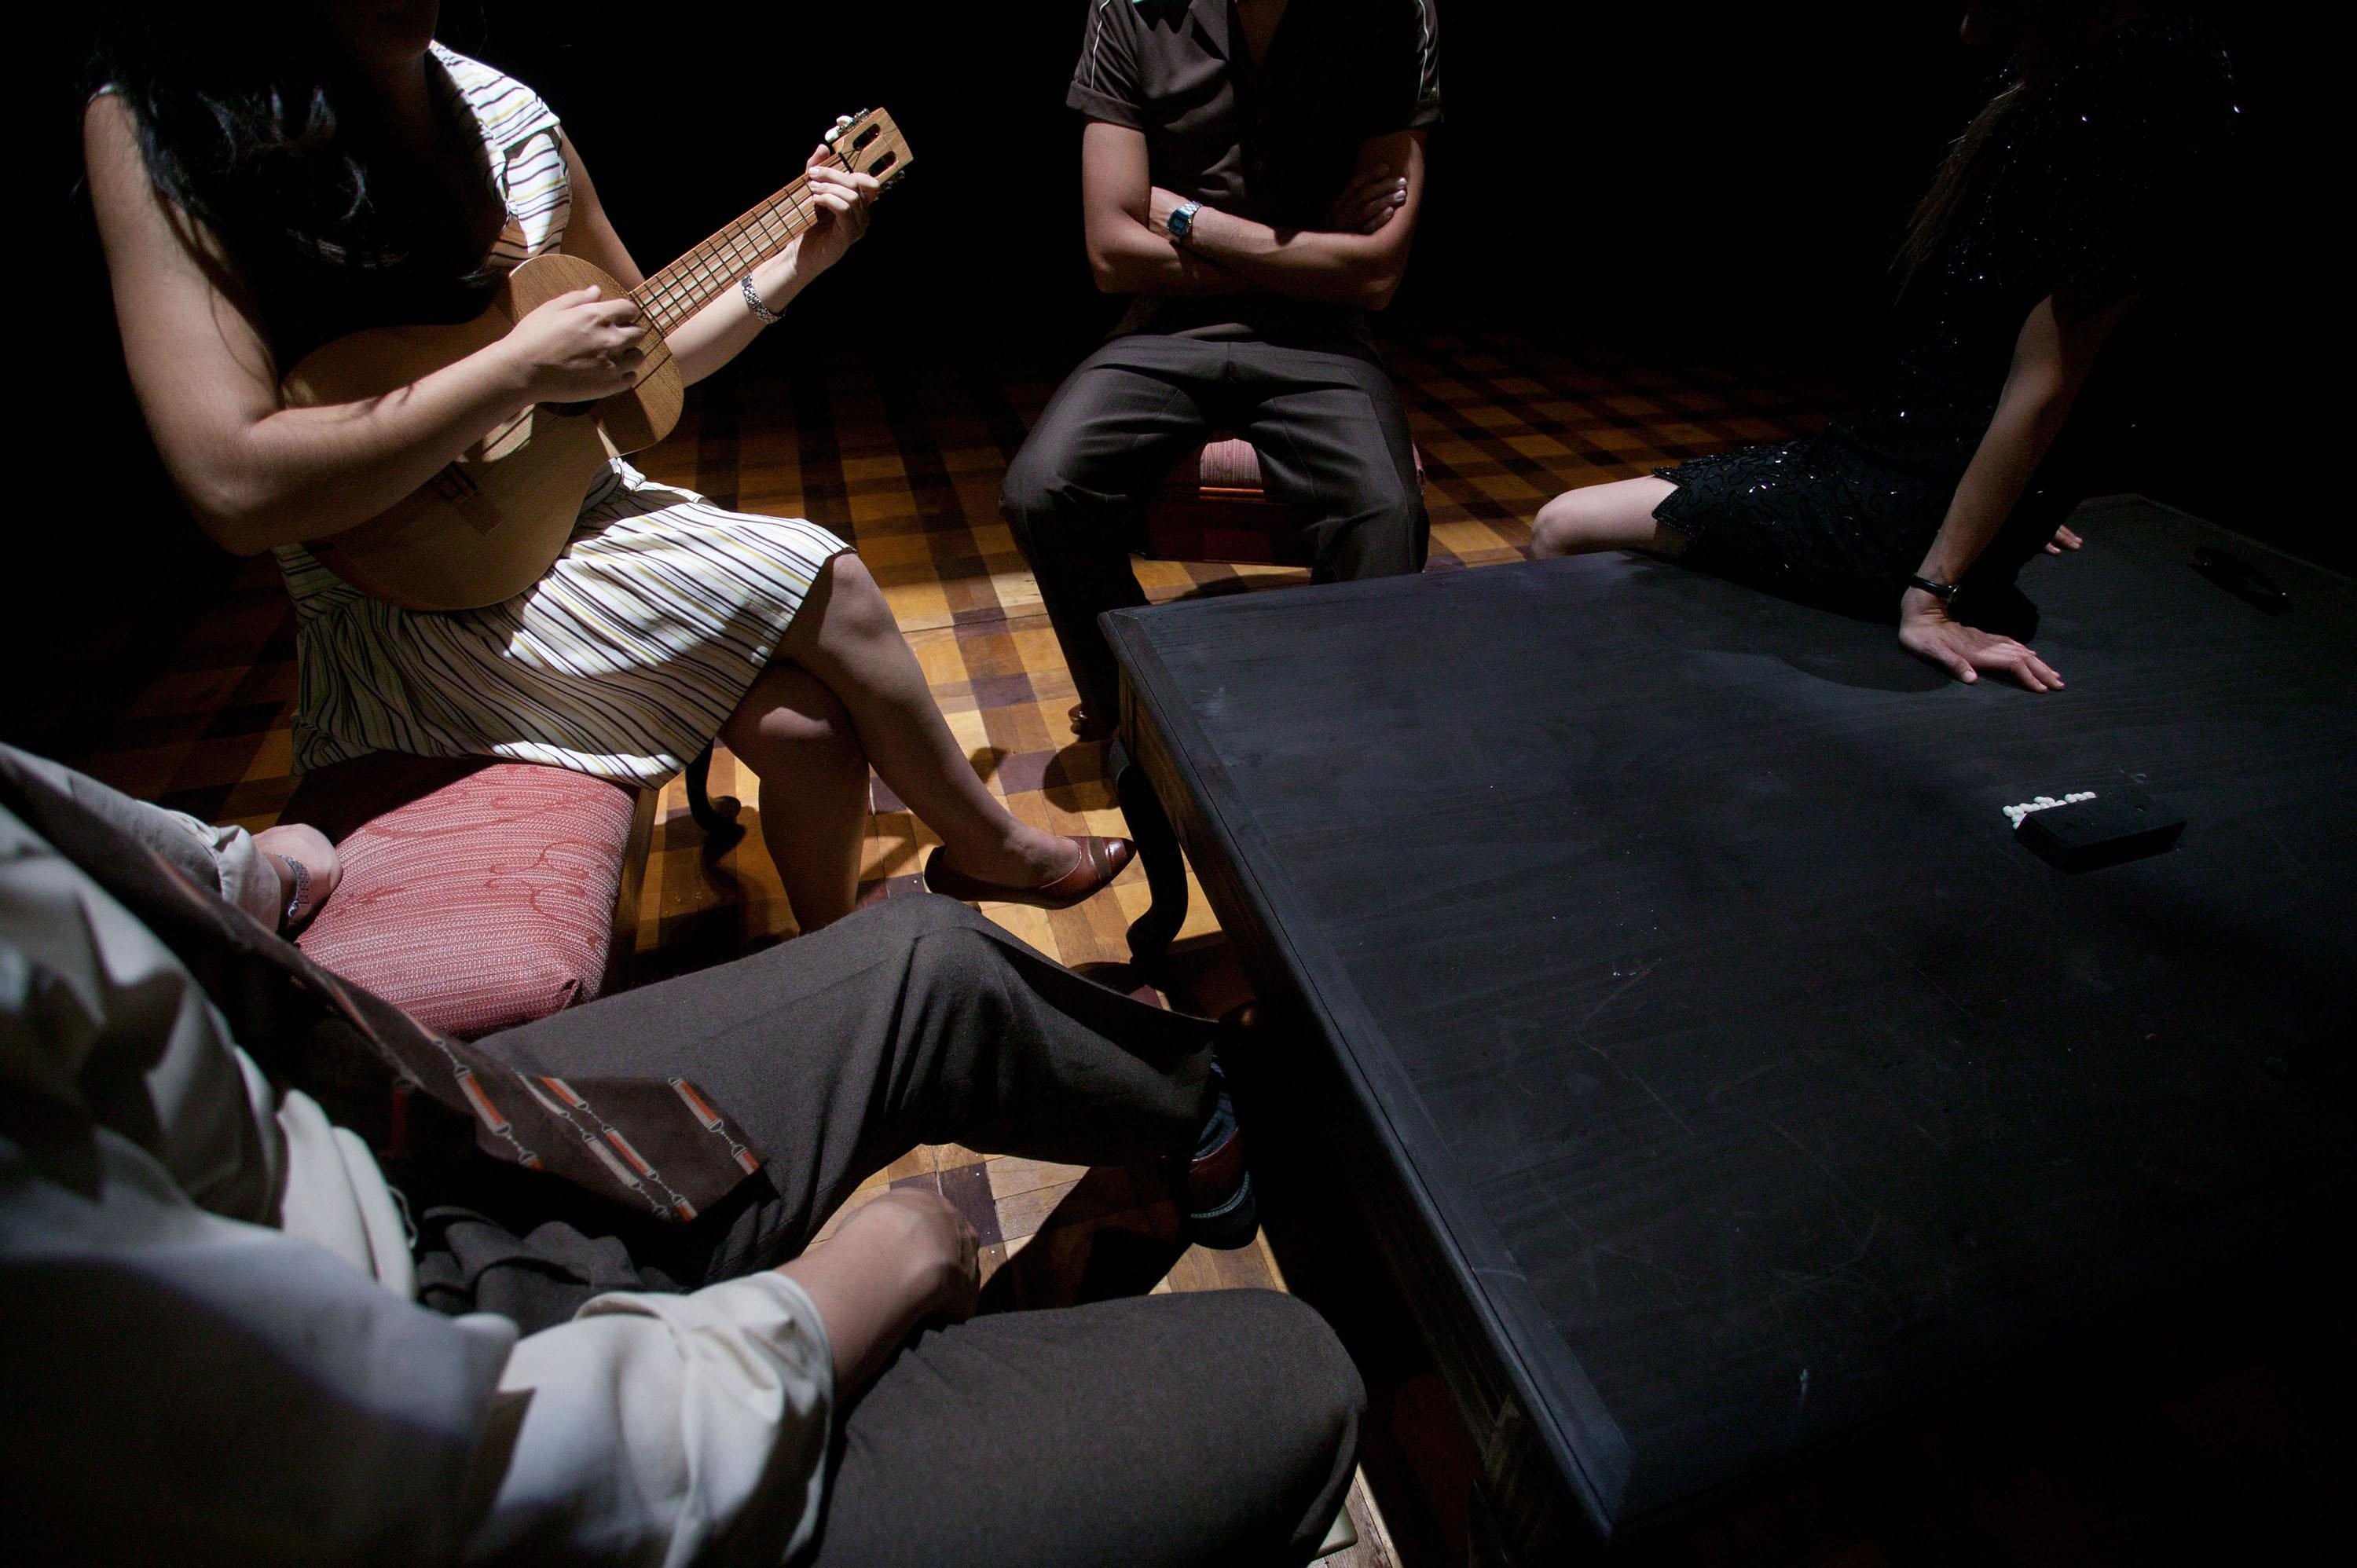 A closely cropped image of four people sitting around a table, one of them is playing a small guitar, we can't see their faces